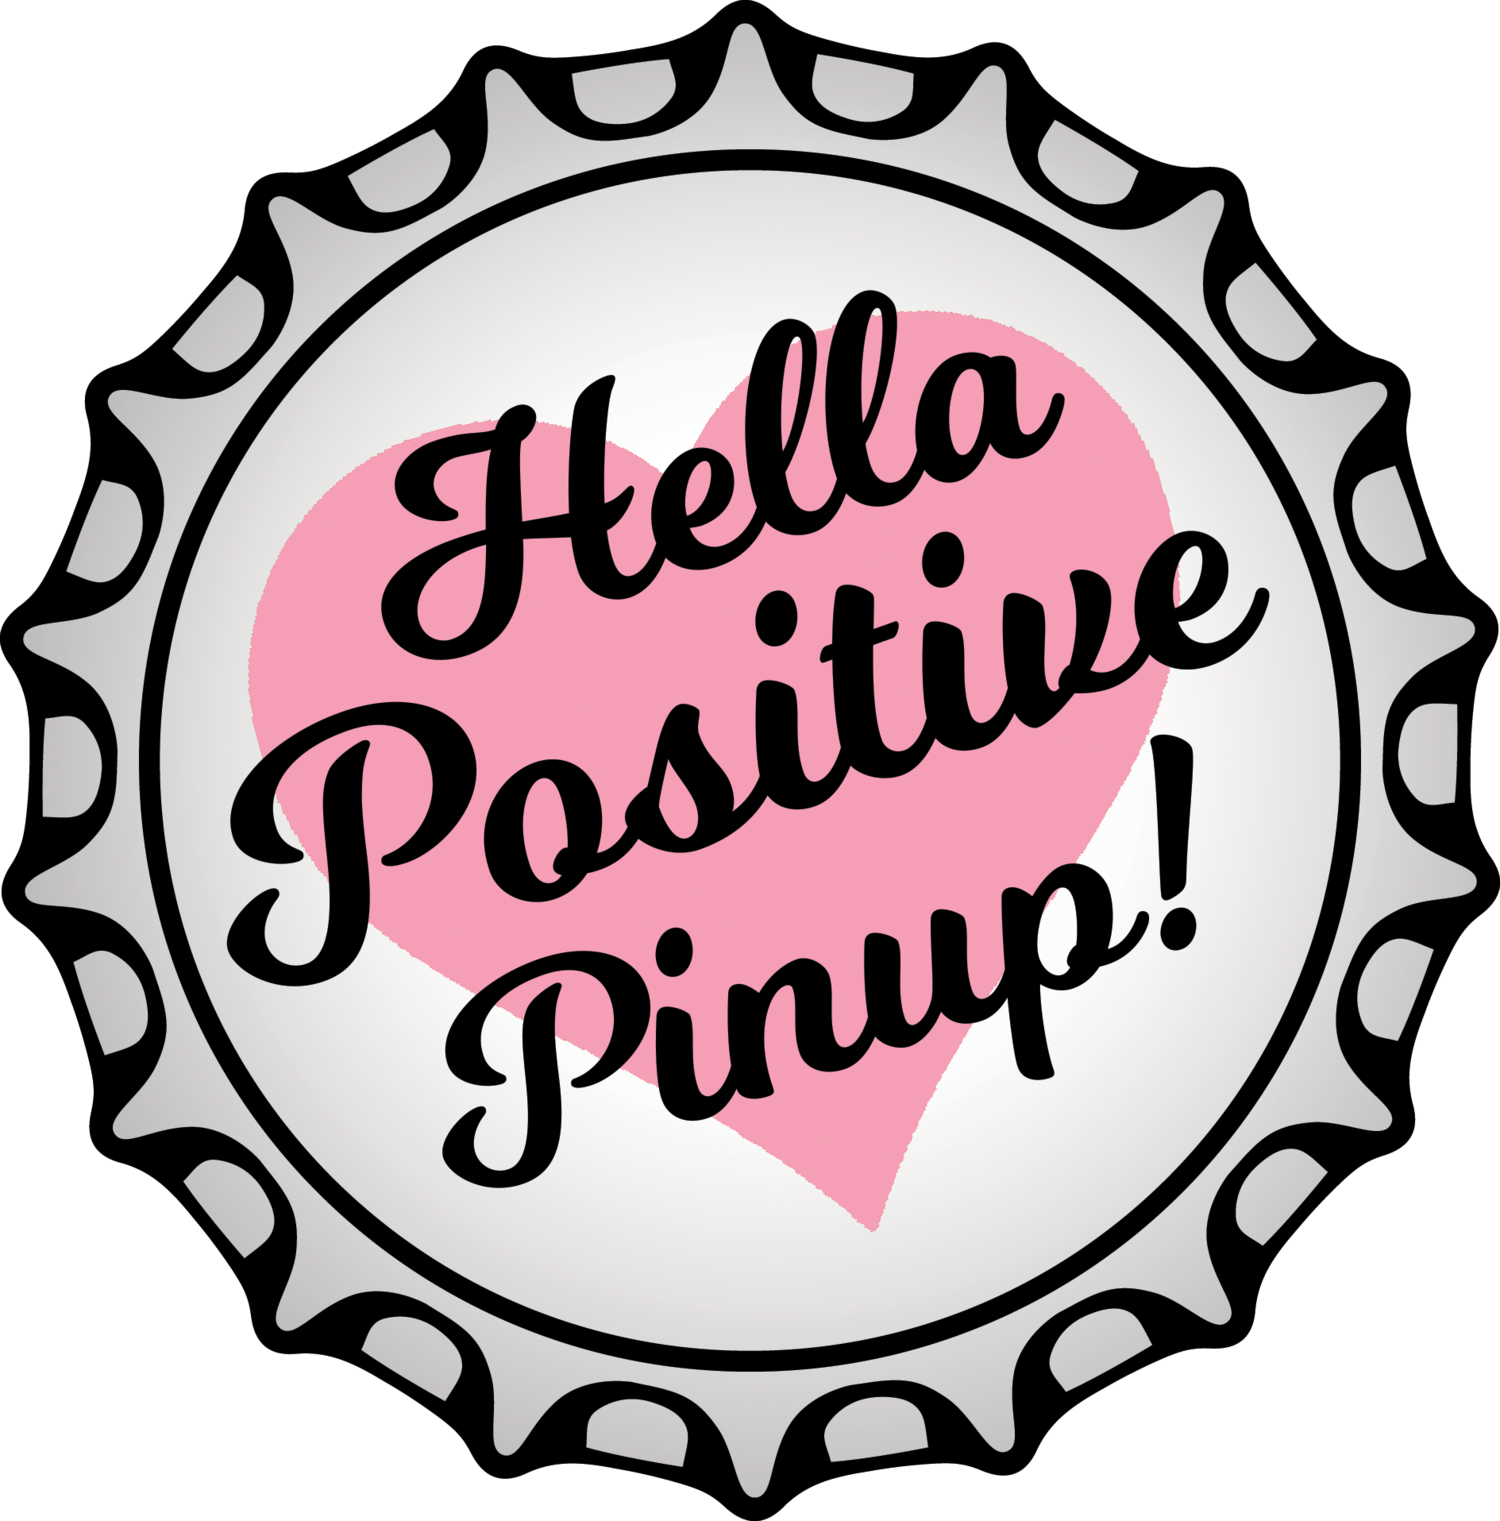 Hella Positive Pin Up and Boudoir